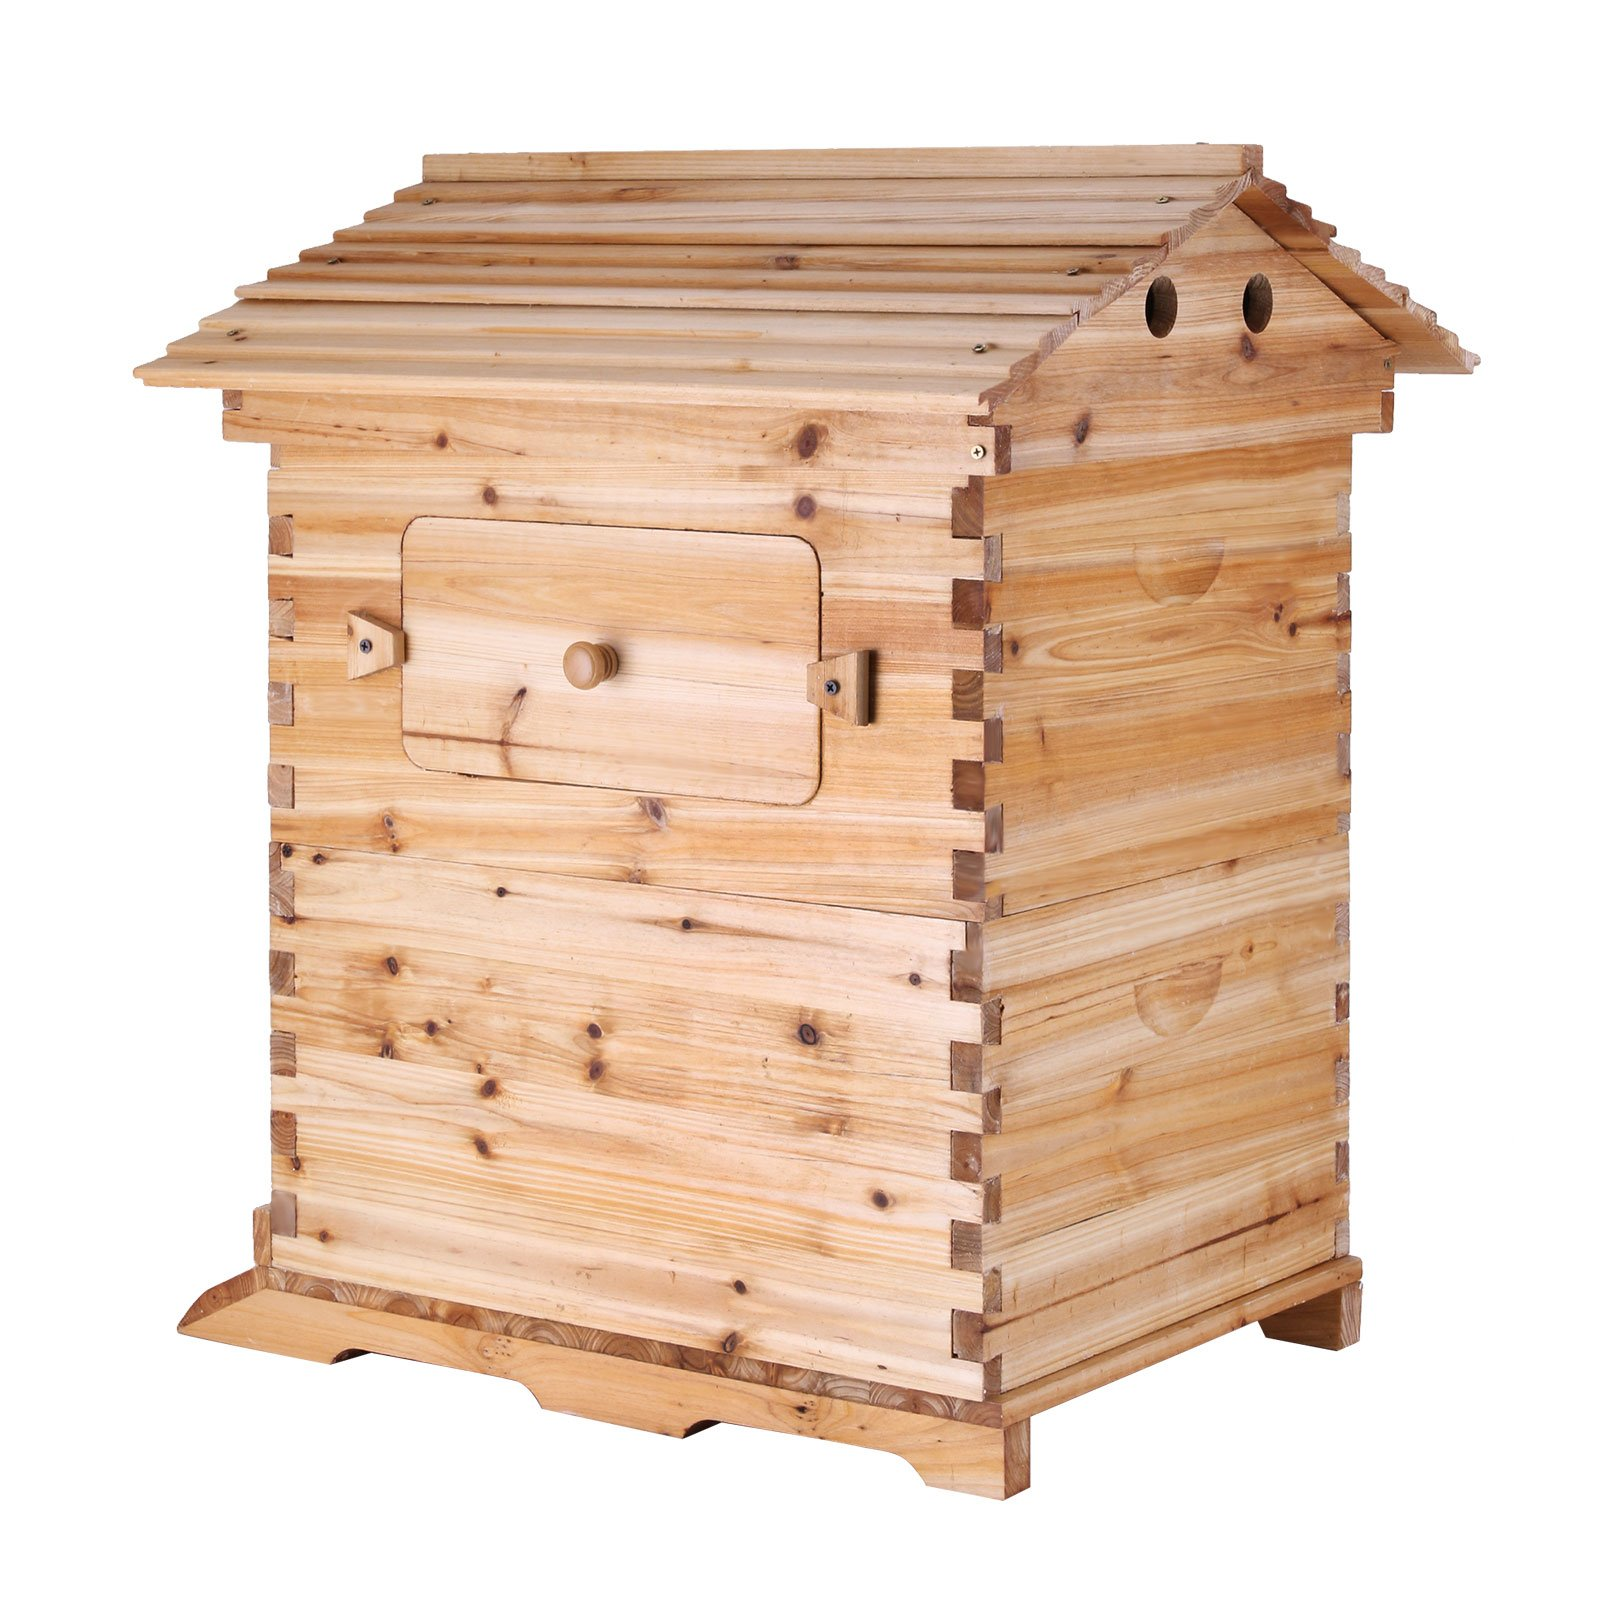 BestEquip Beehive Auto Flow 20x16x10 Inch Wooden Honey Beehive 7 Pcs Frames Honey Beehive Kits (wood) by BestEquip